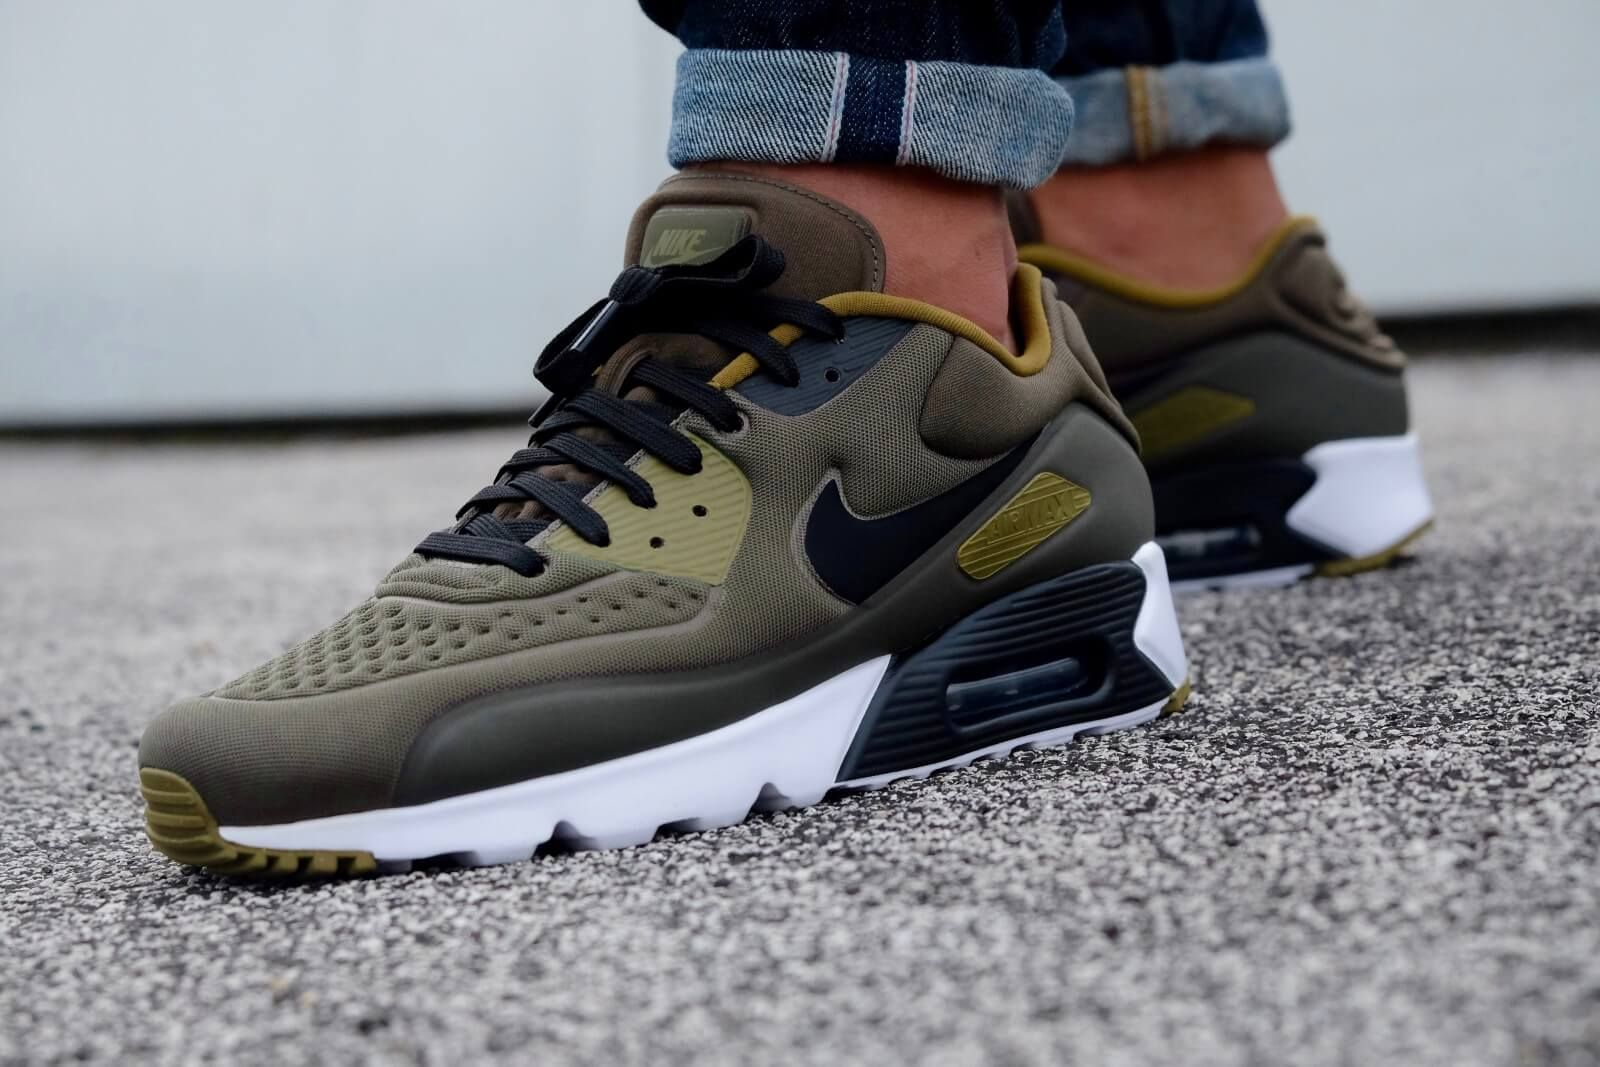 Nike Air Max 90 Ultra Special Edition Cargo Khaki Black